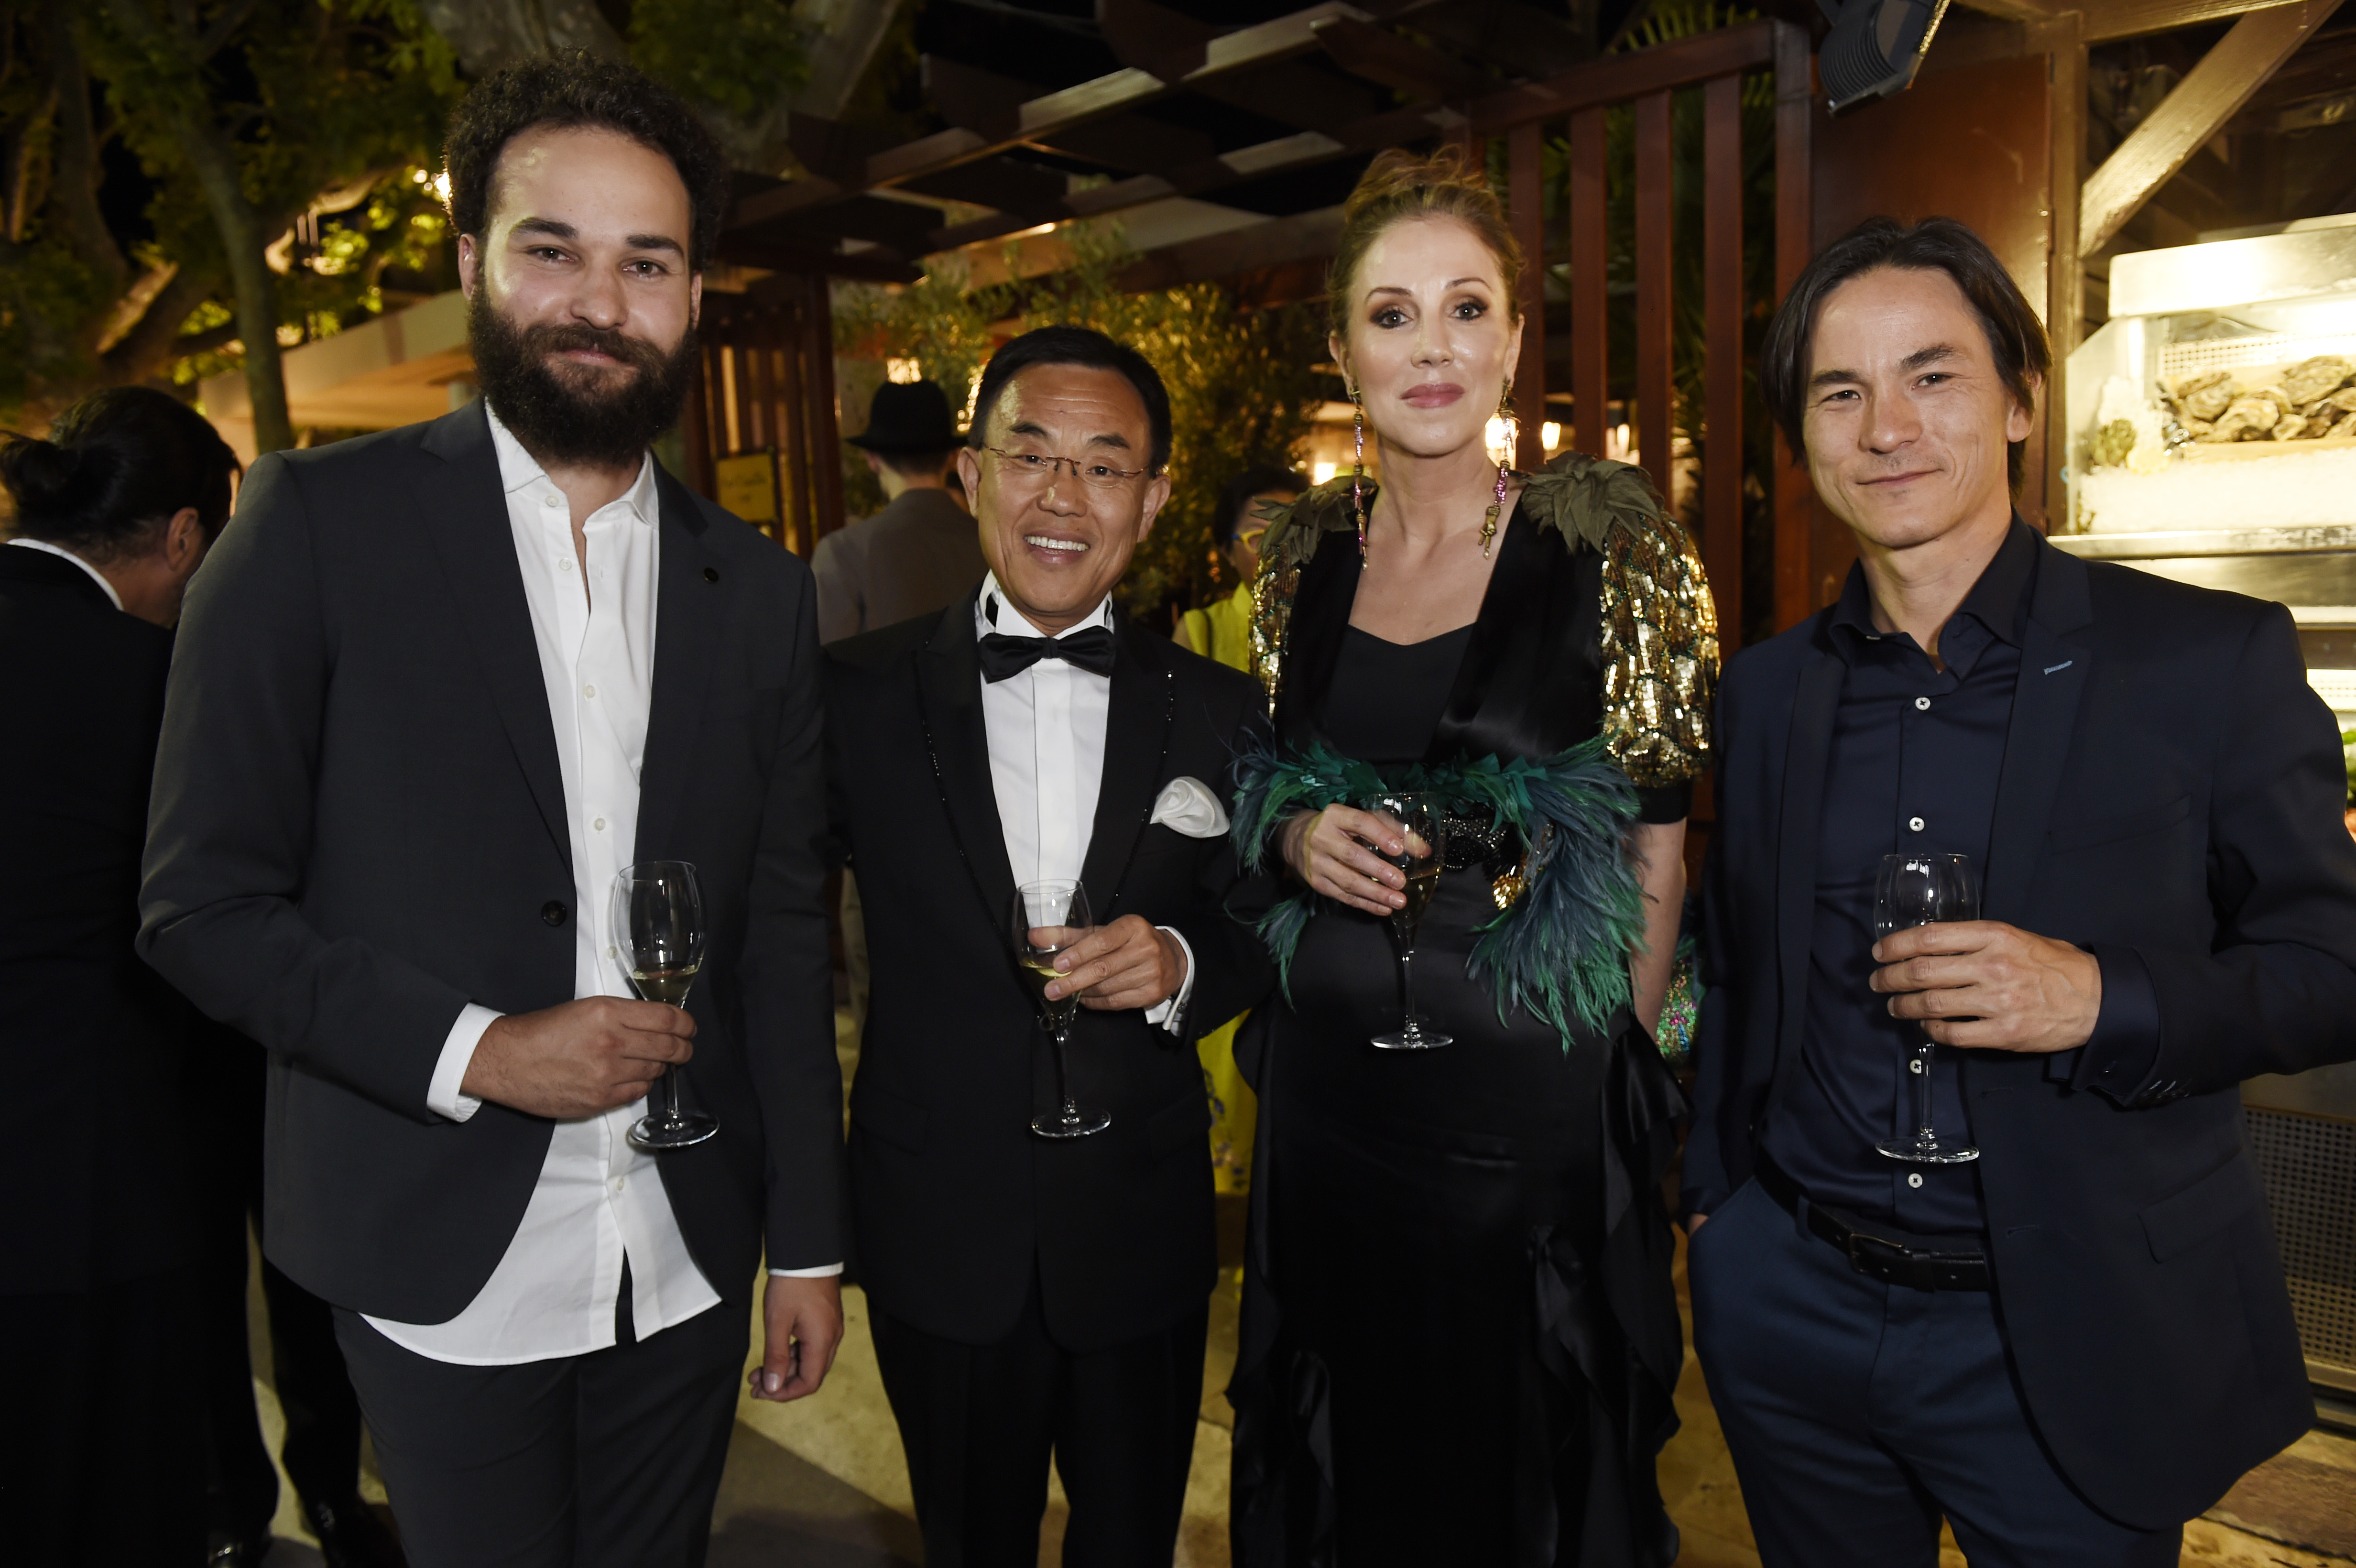 CANNES, FRANCE - MAY 22:  Max Devolder, Jack Gao, Mary Parent and Benoit Chang attends Prada Private Dinner during the 70th annual Cannes Film Festival at Restaurant Fred L'Ecailler on May 22, 2017 in Cannes, France.  (Photo by Antony Jones/Getty Images for Prada)